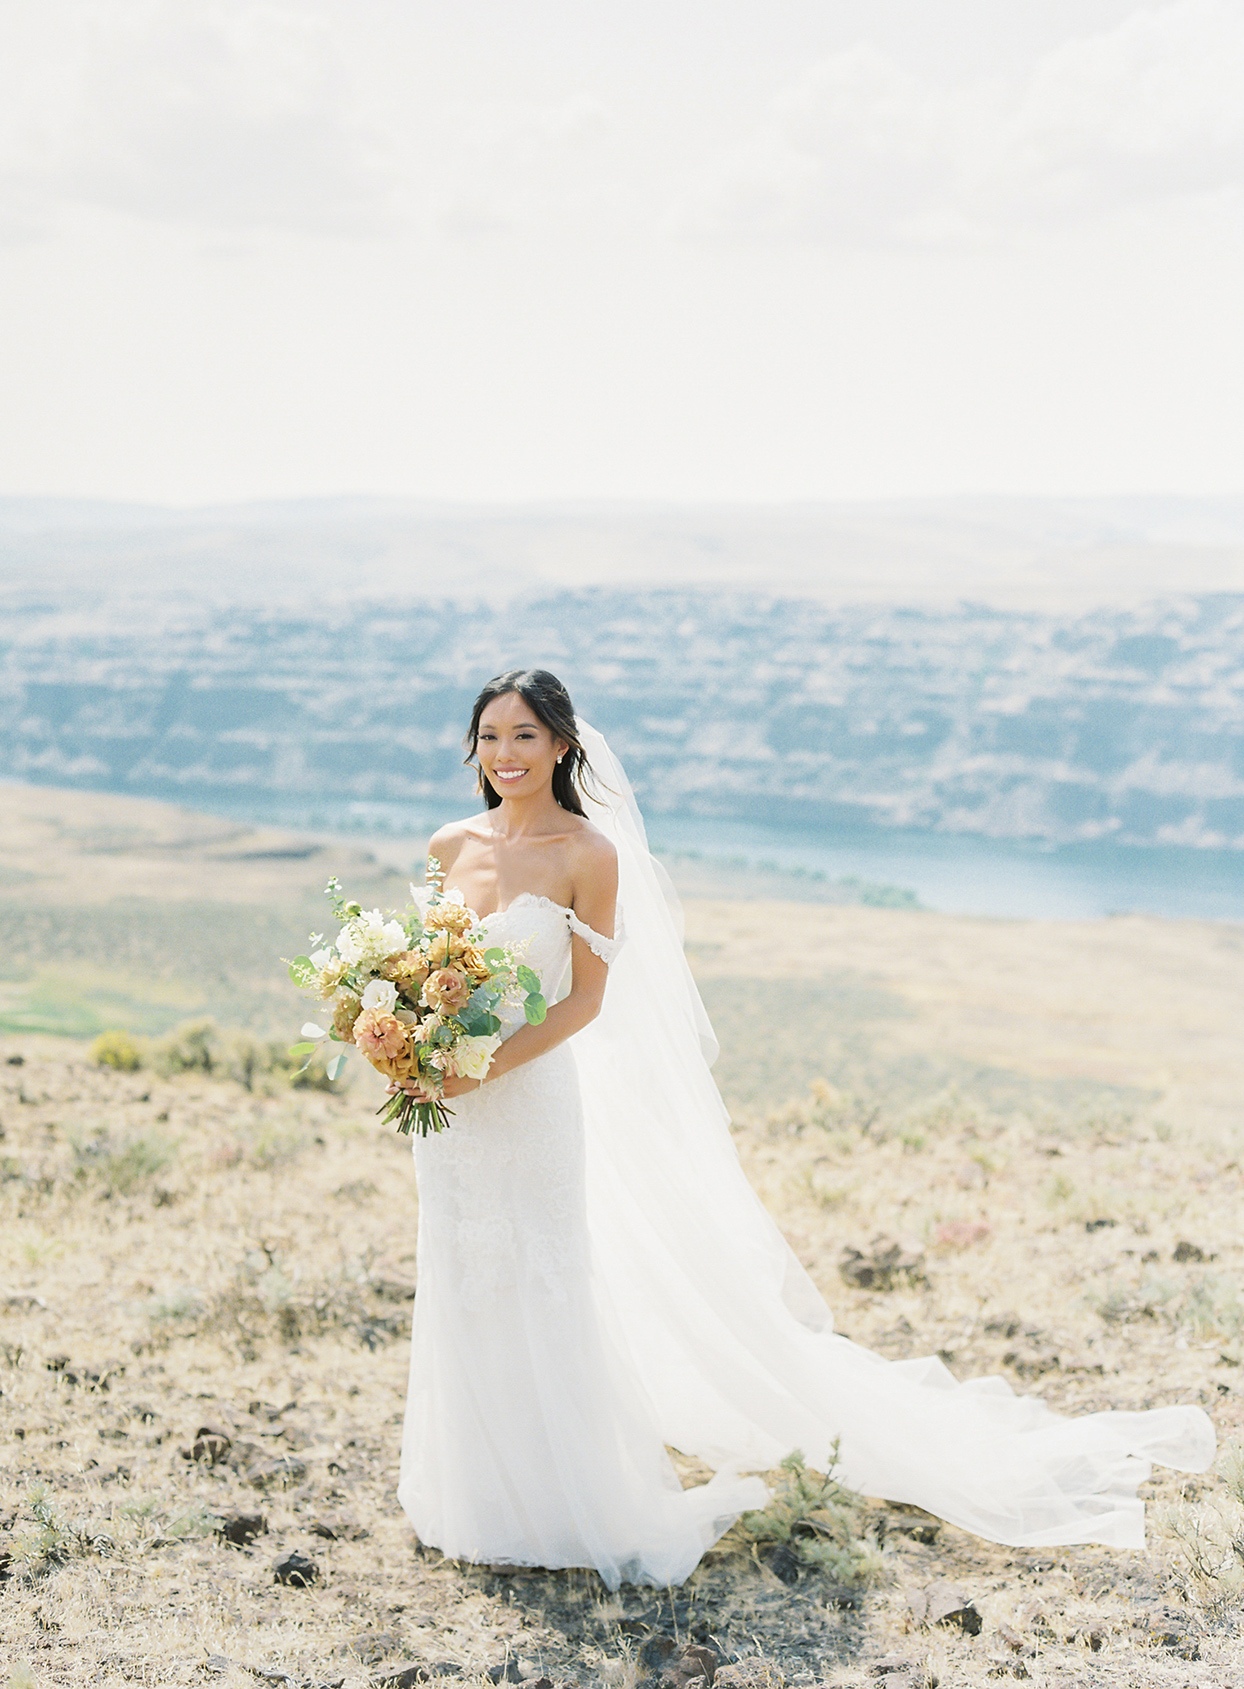 micaela curtis bride out on field with view